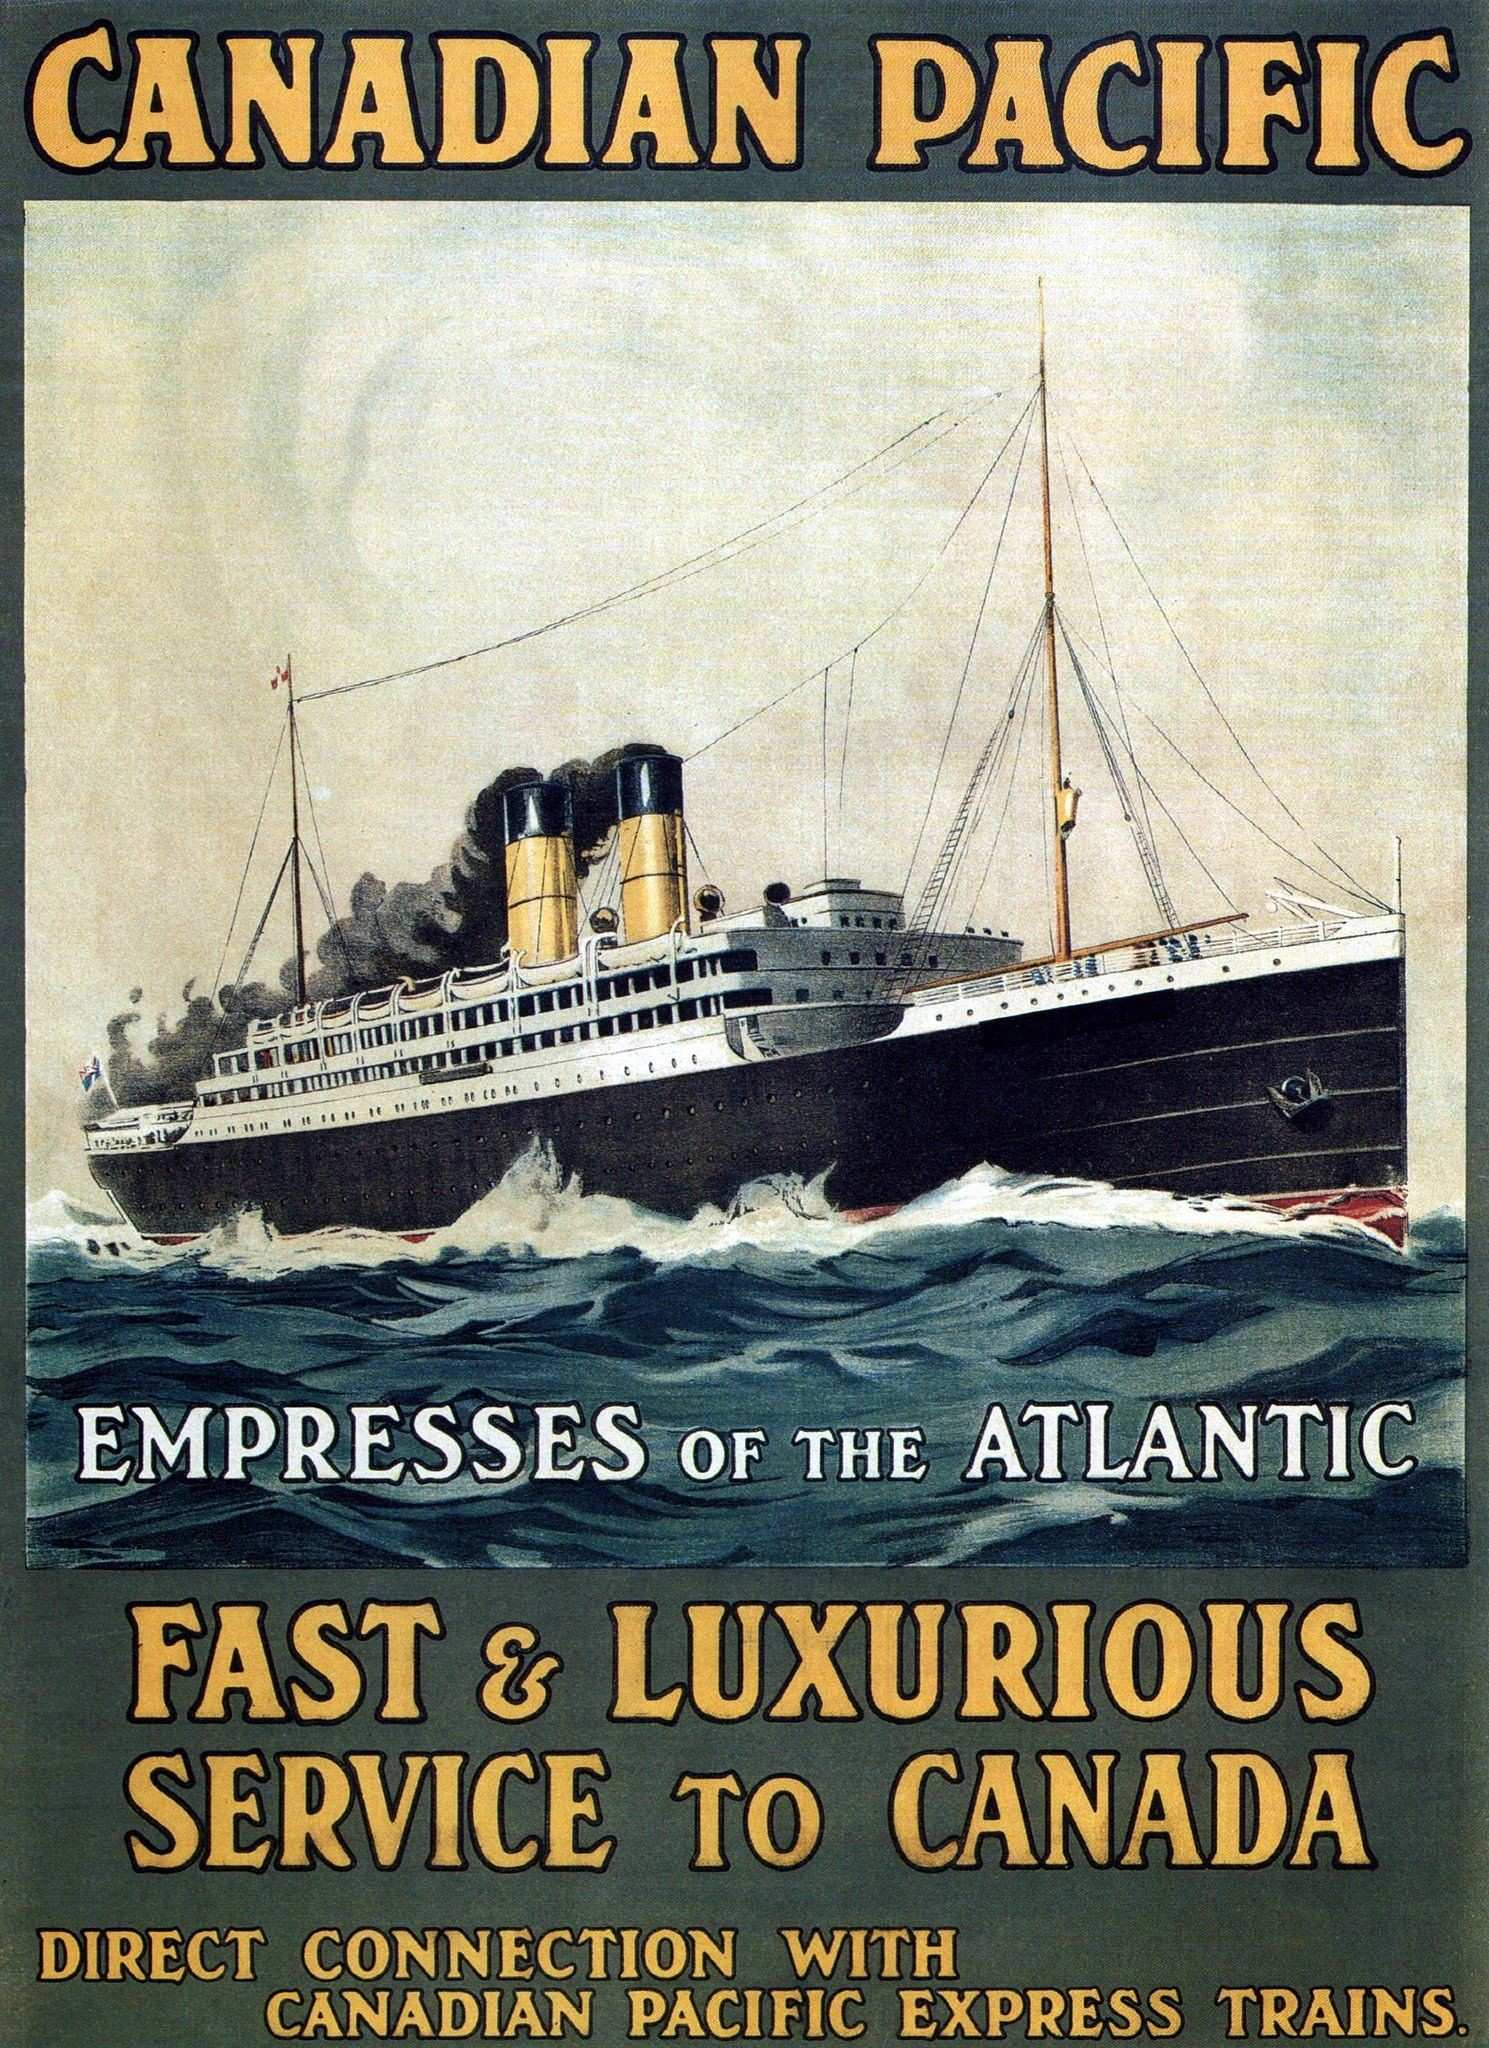 Fast & Luxurious Service to Canada 1910